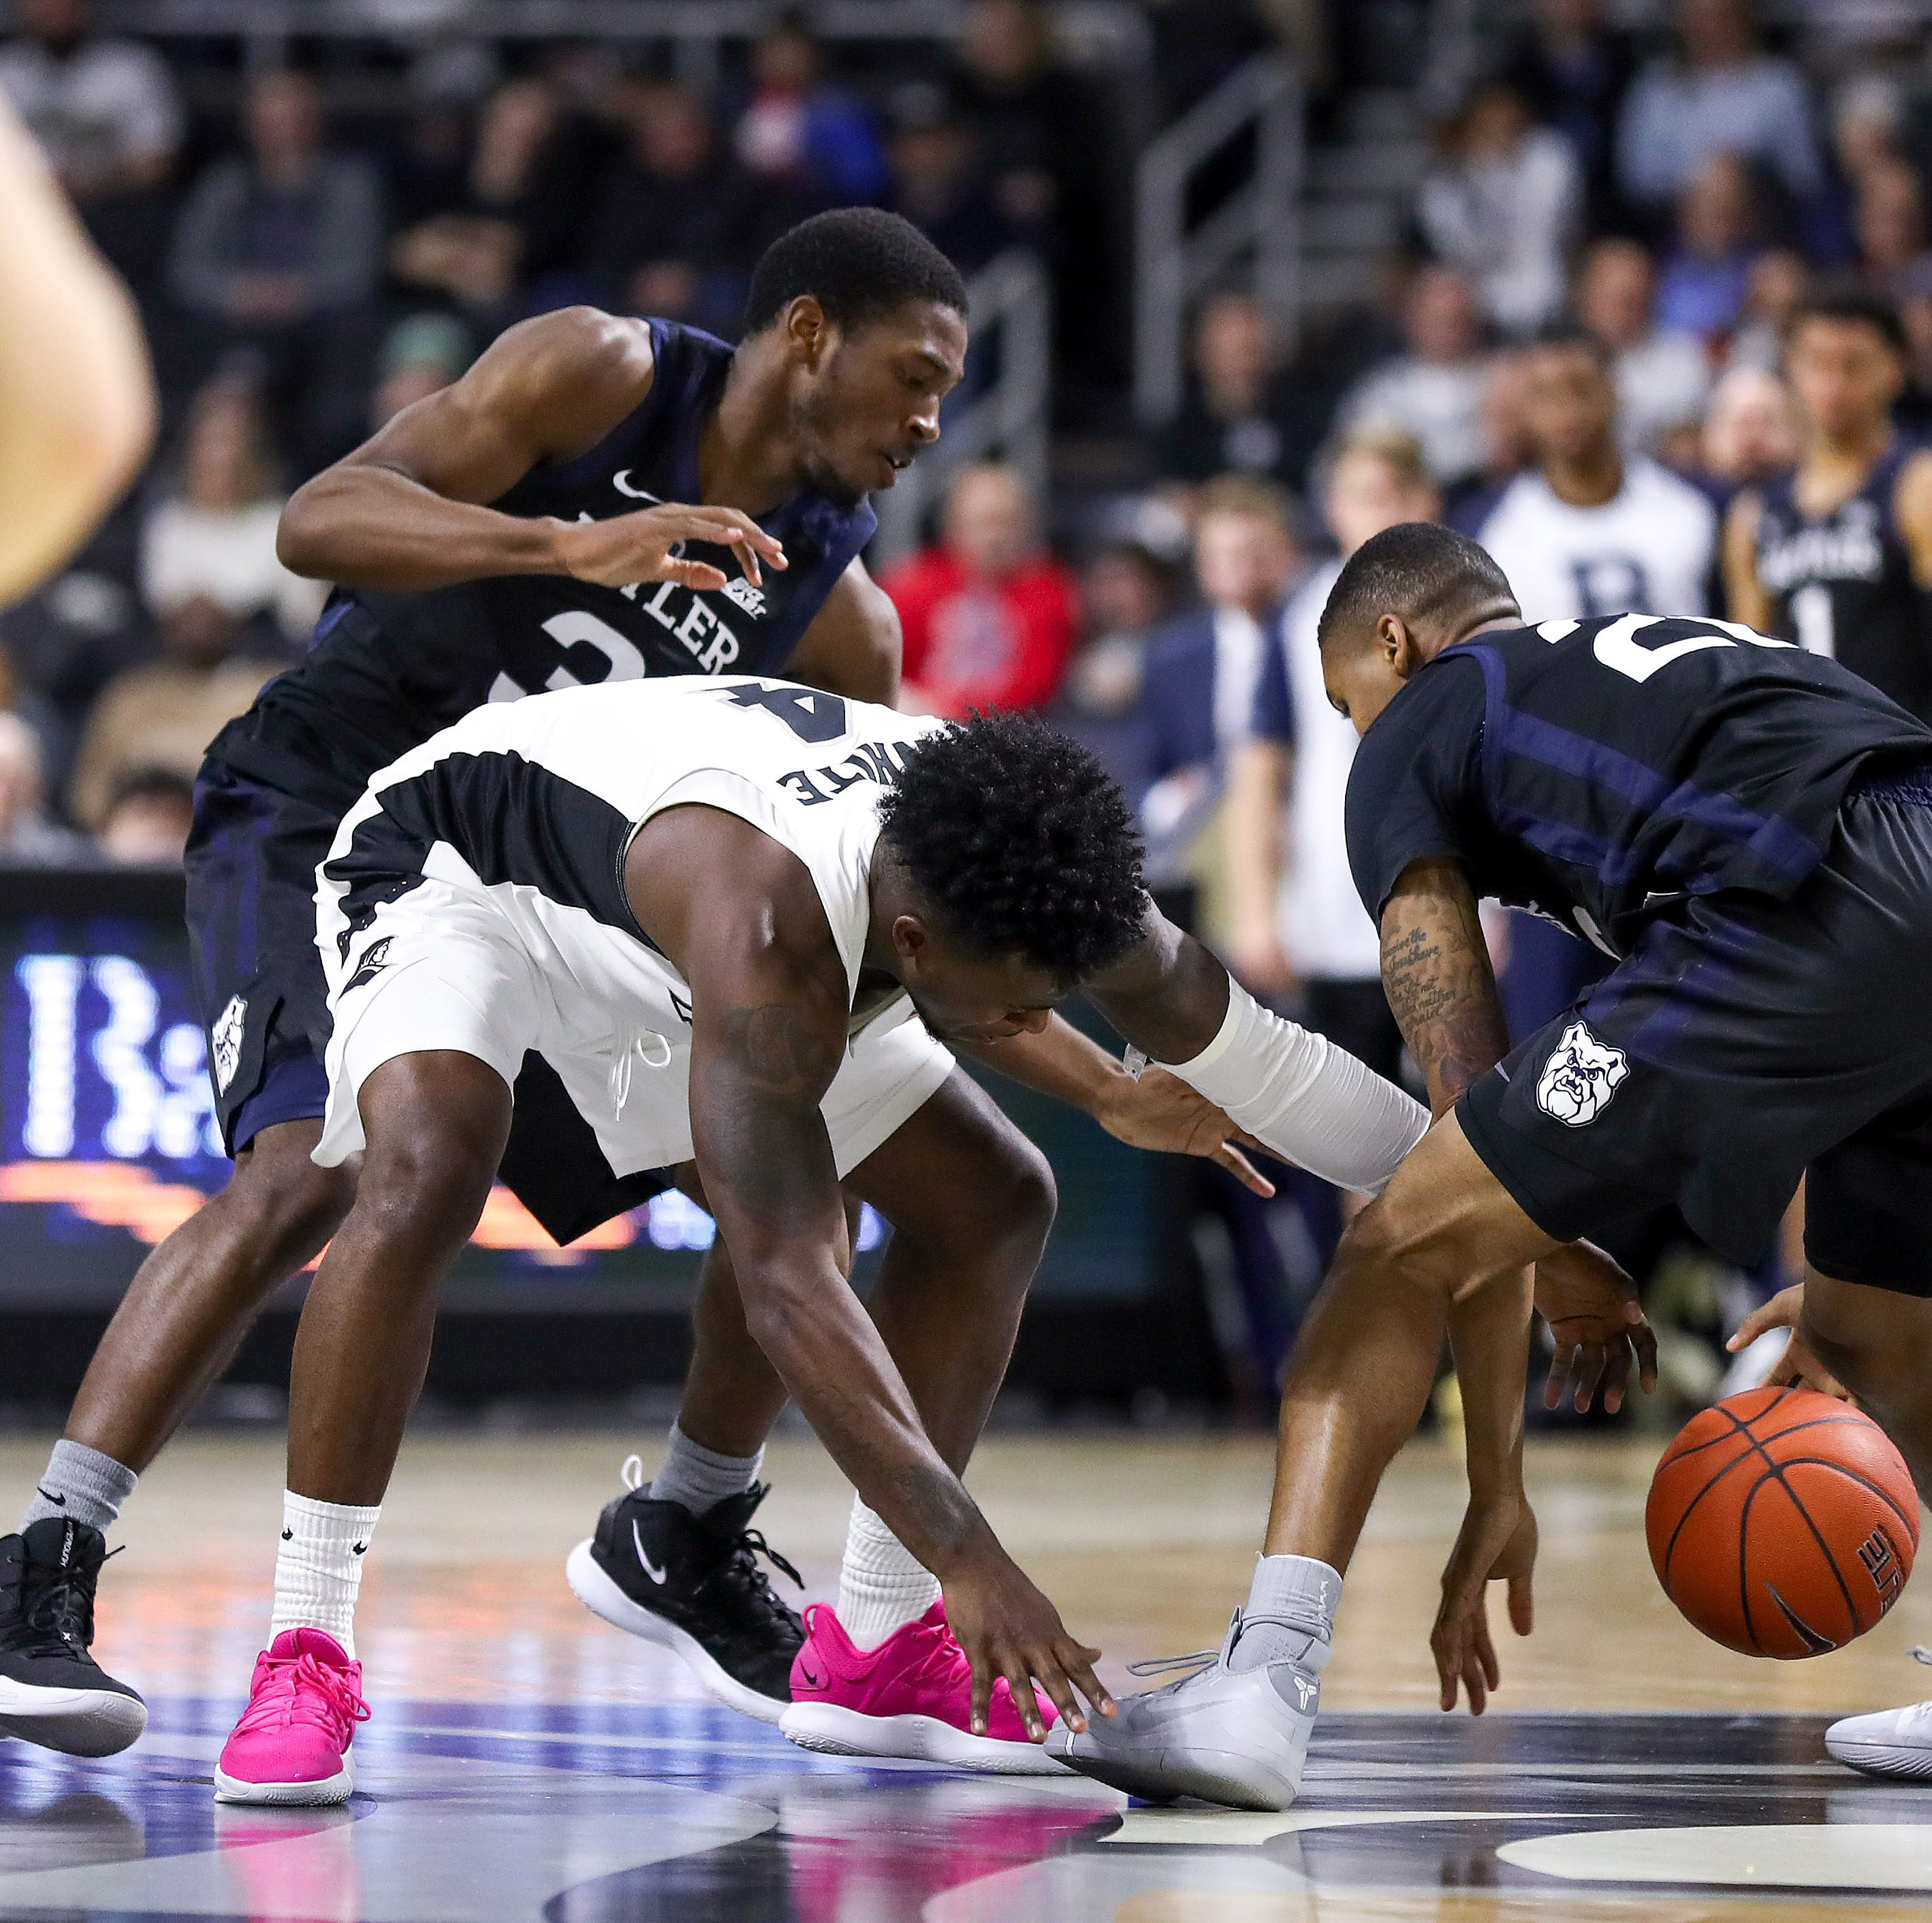 Insider: Butler usually defies expectations — but not this season